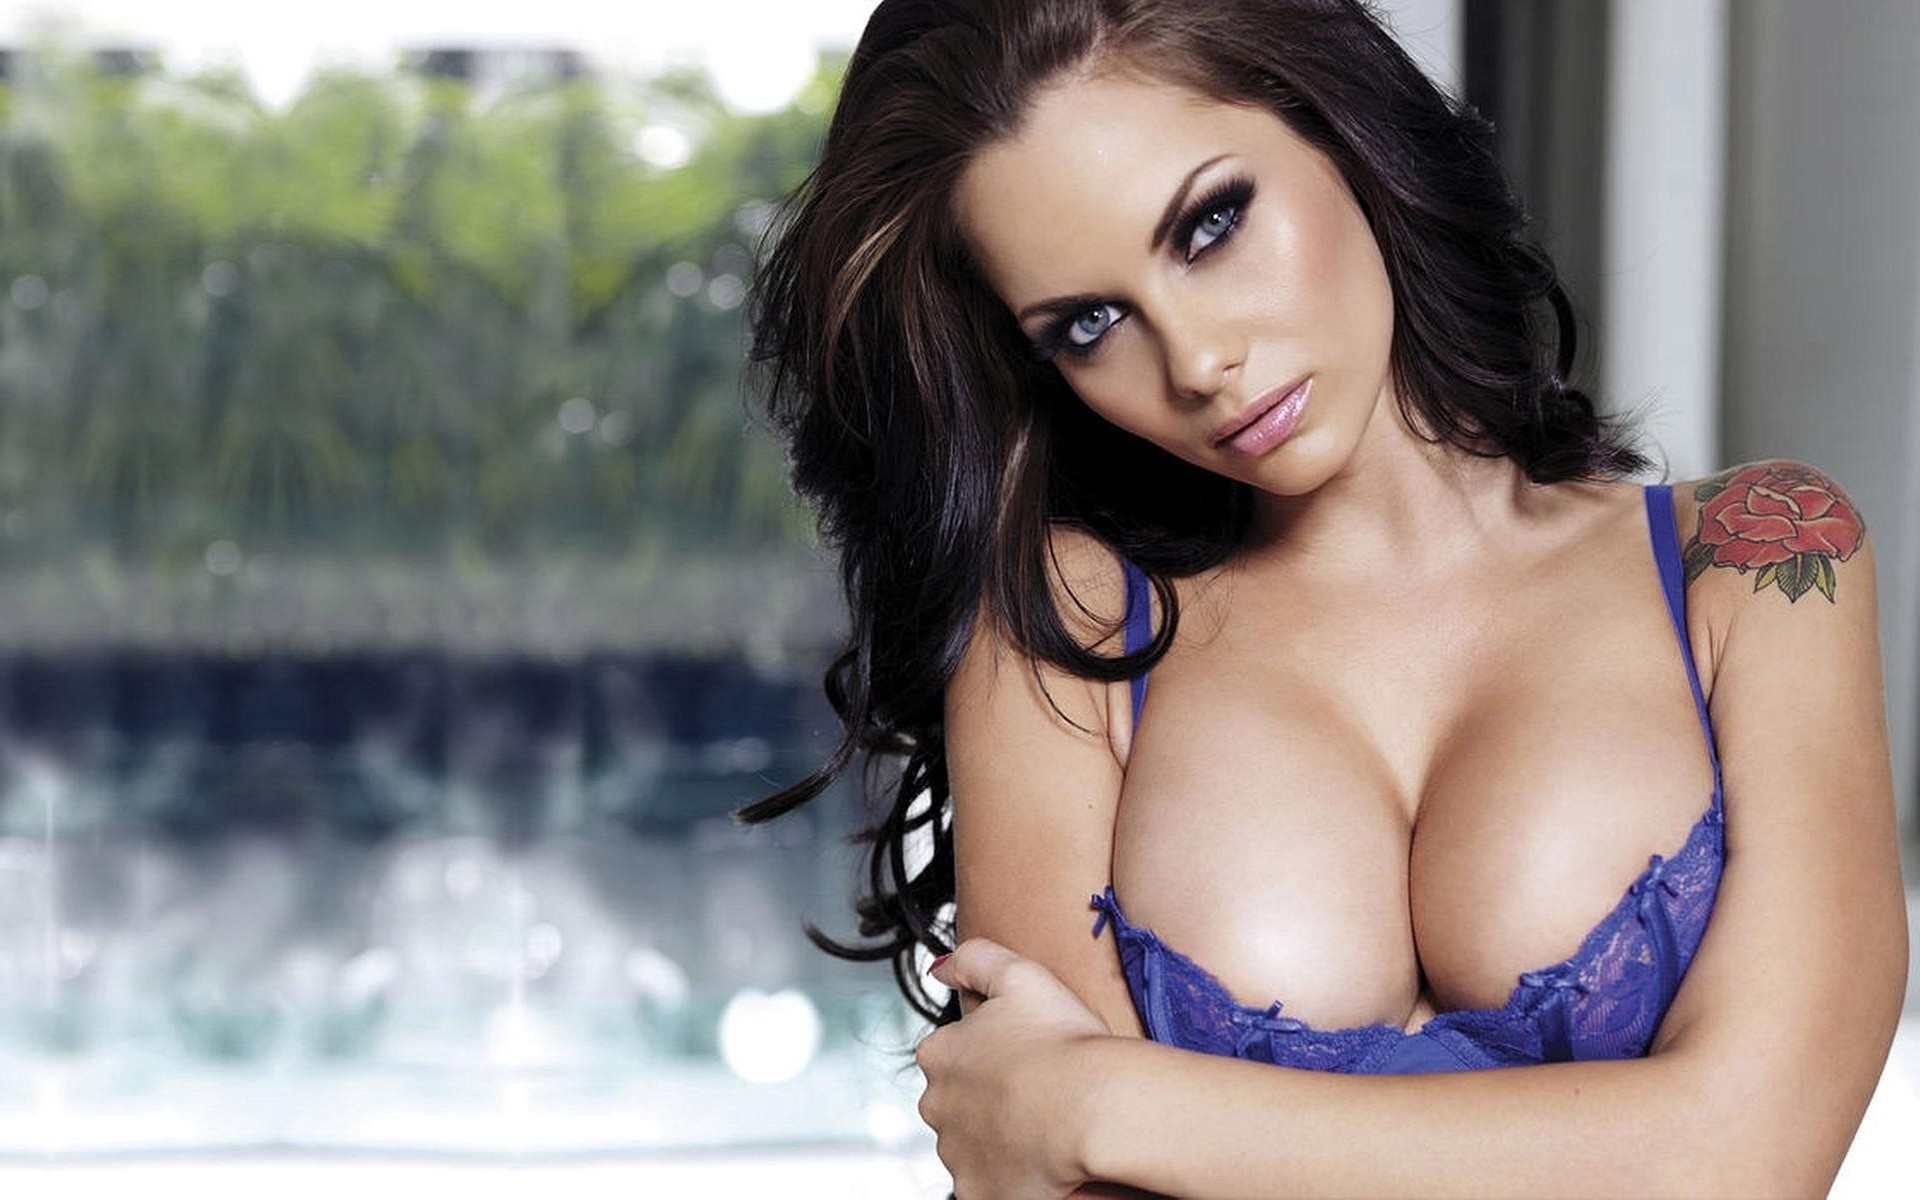 Magnificent jessica jane clement